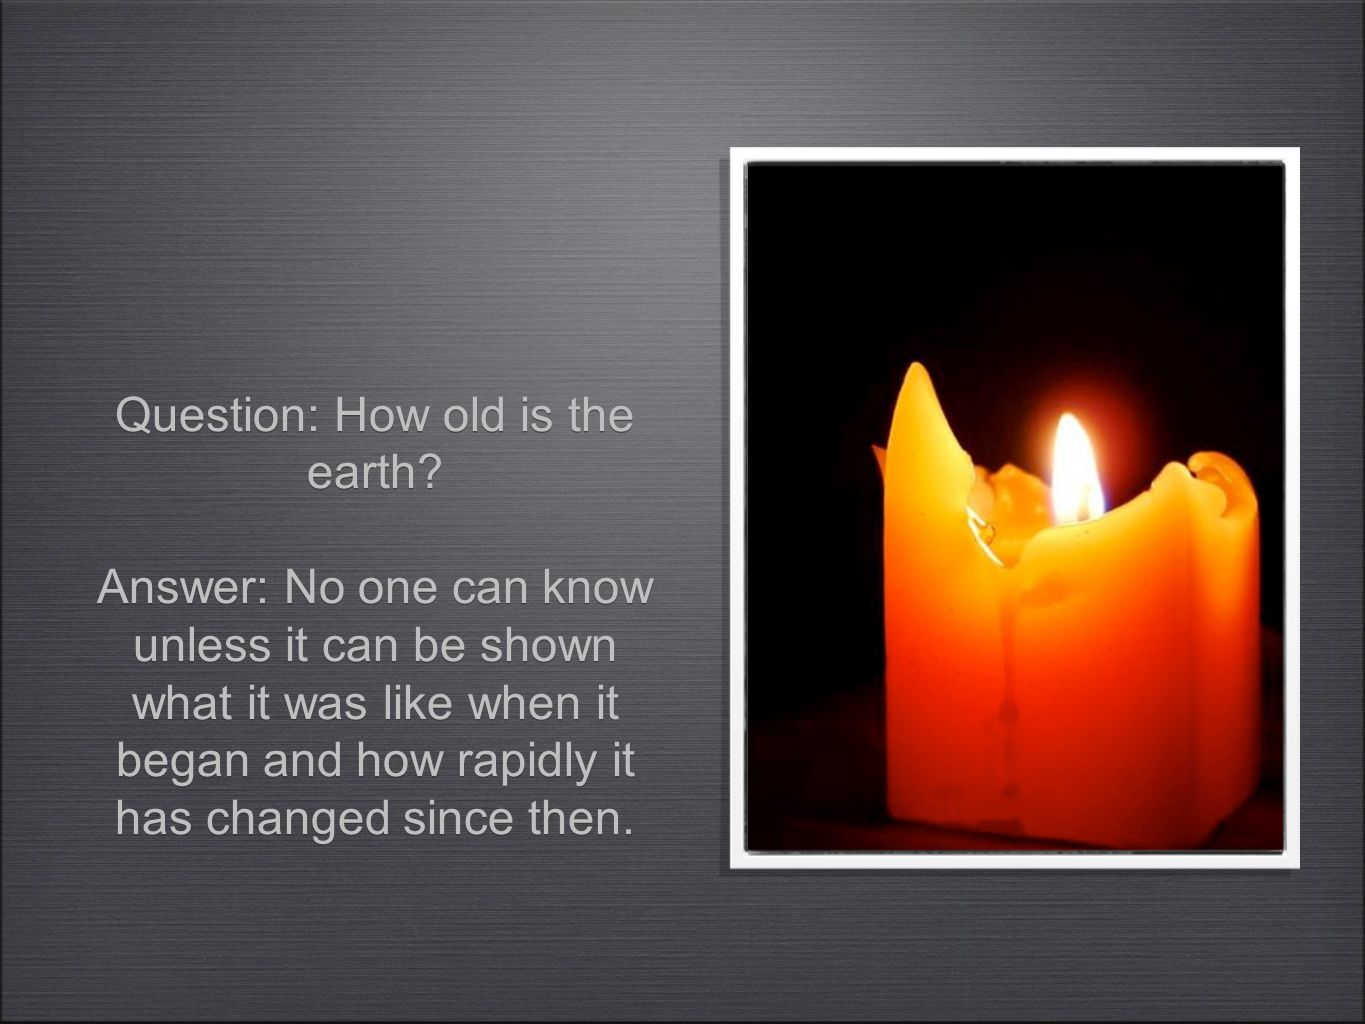 Question: How old is the earth? Answer: No one can know unless it can be shown what it was like when it began and how rapidly it has changed since the